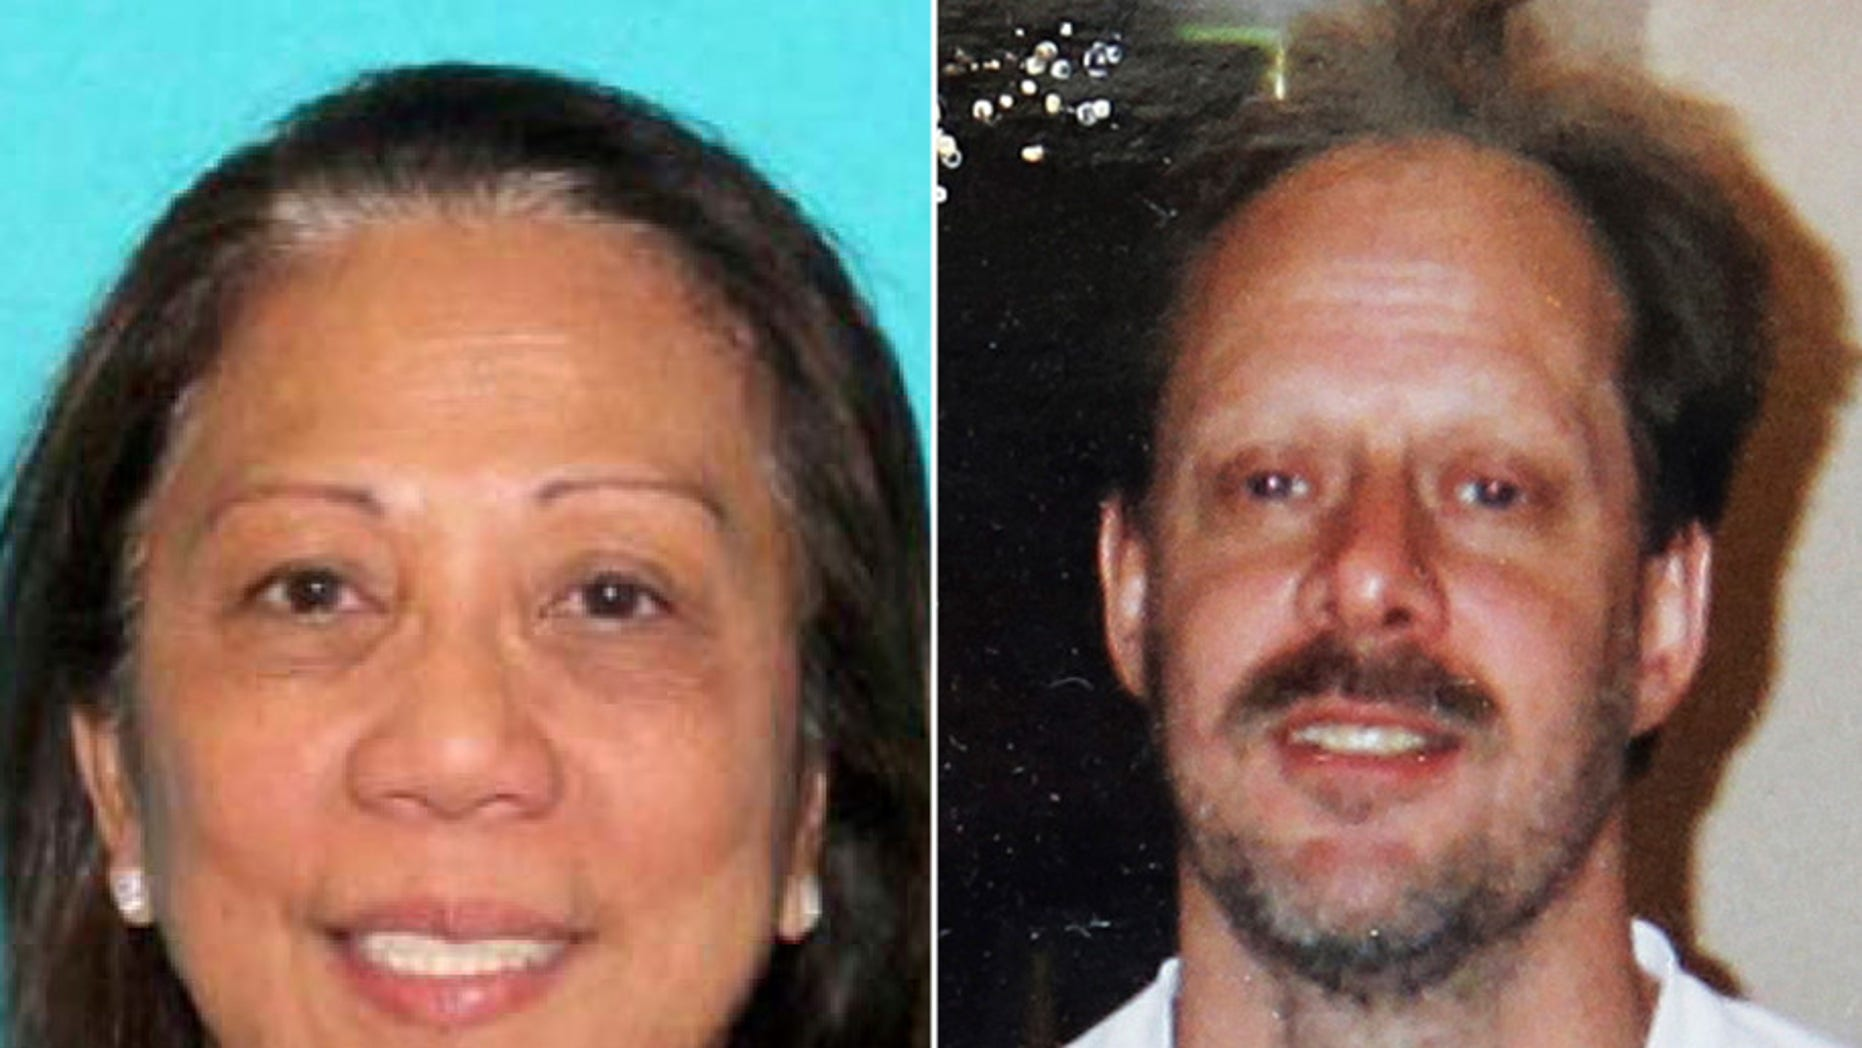 Marilou Danley, girlfriend of Las Vegas gunman Stephen Paddock, was in the Philippines when the Oct. 1 massacre occurred, authorities have said.